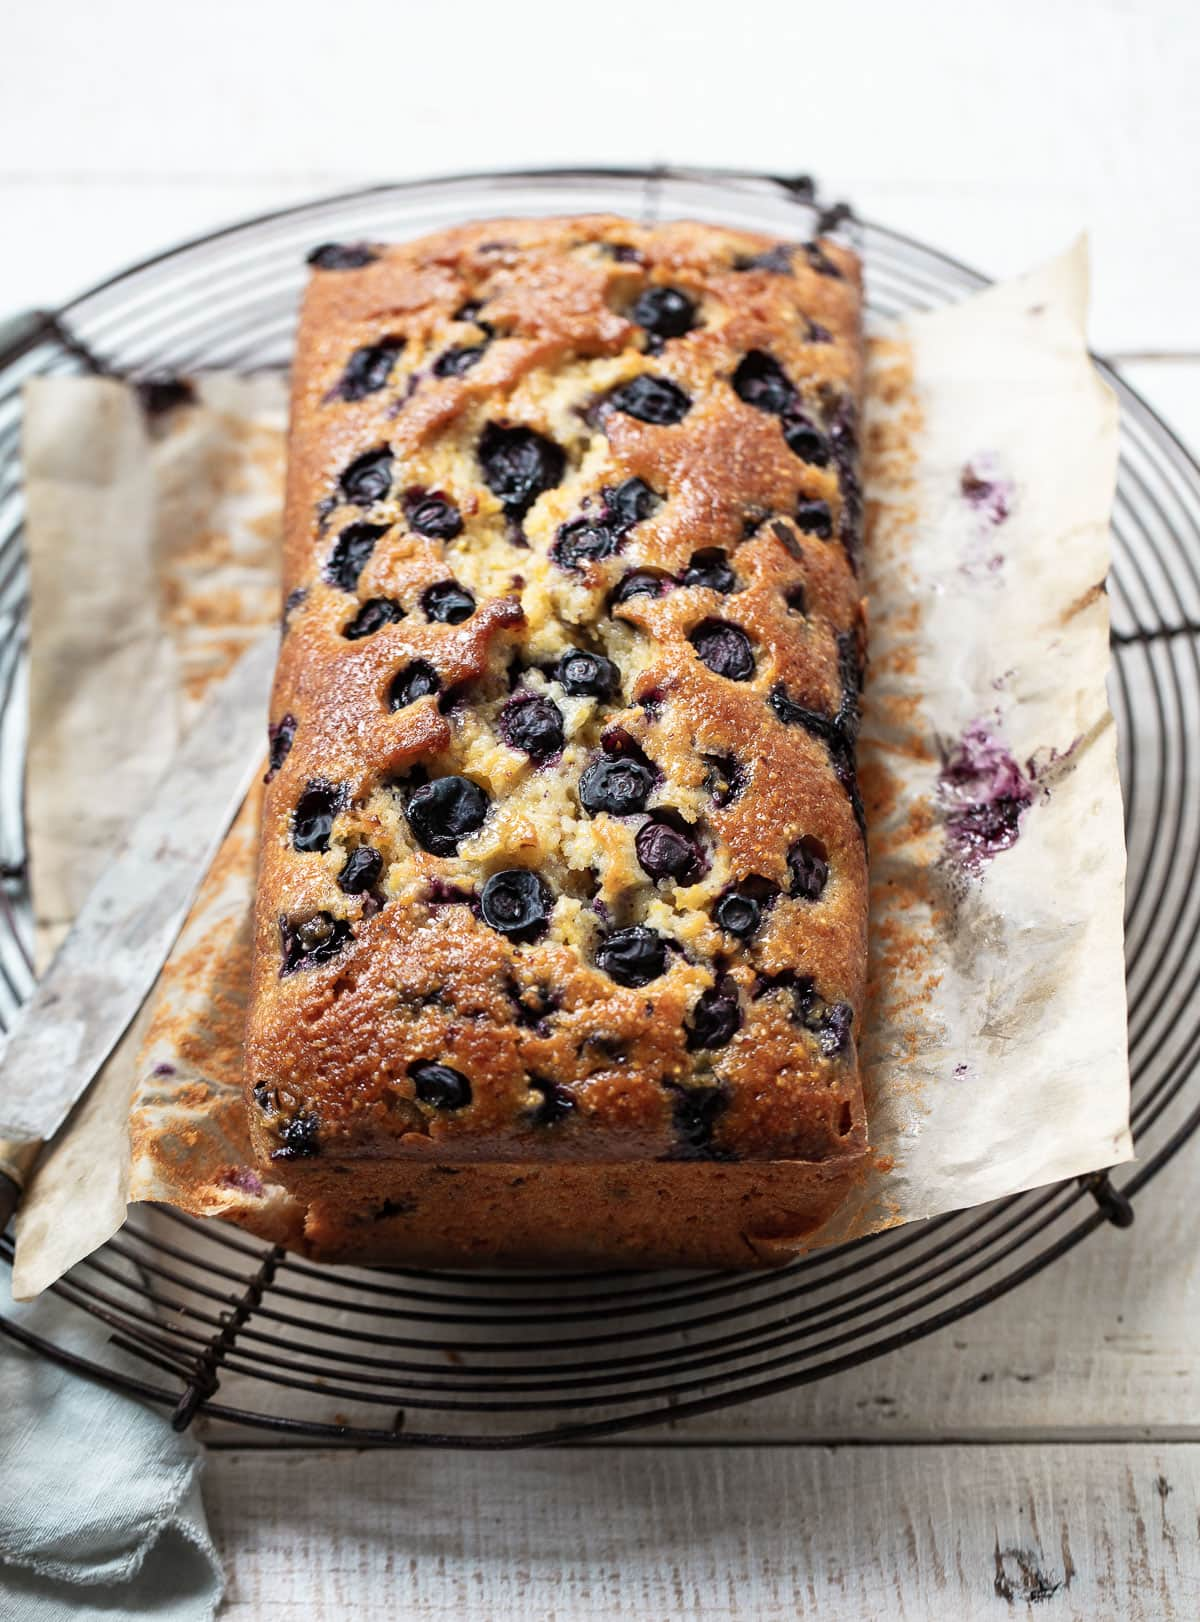 Baked and sliced cornmeal loaf cake with jammy blueberries on a cooling rack